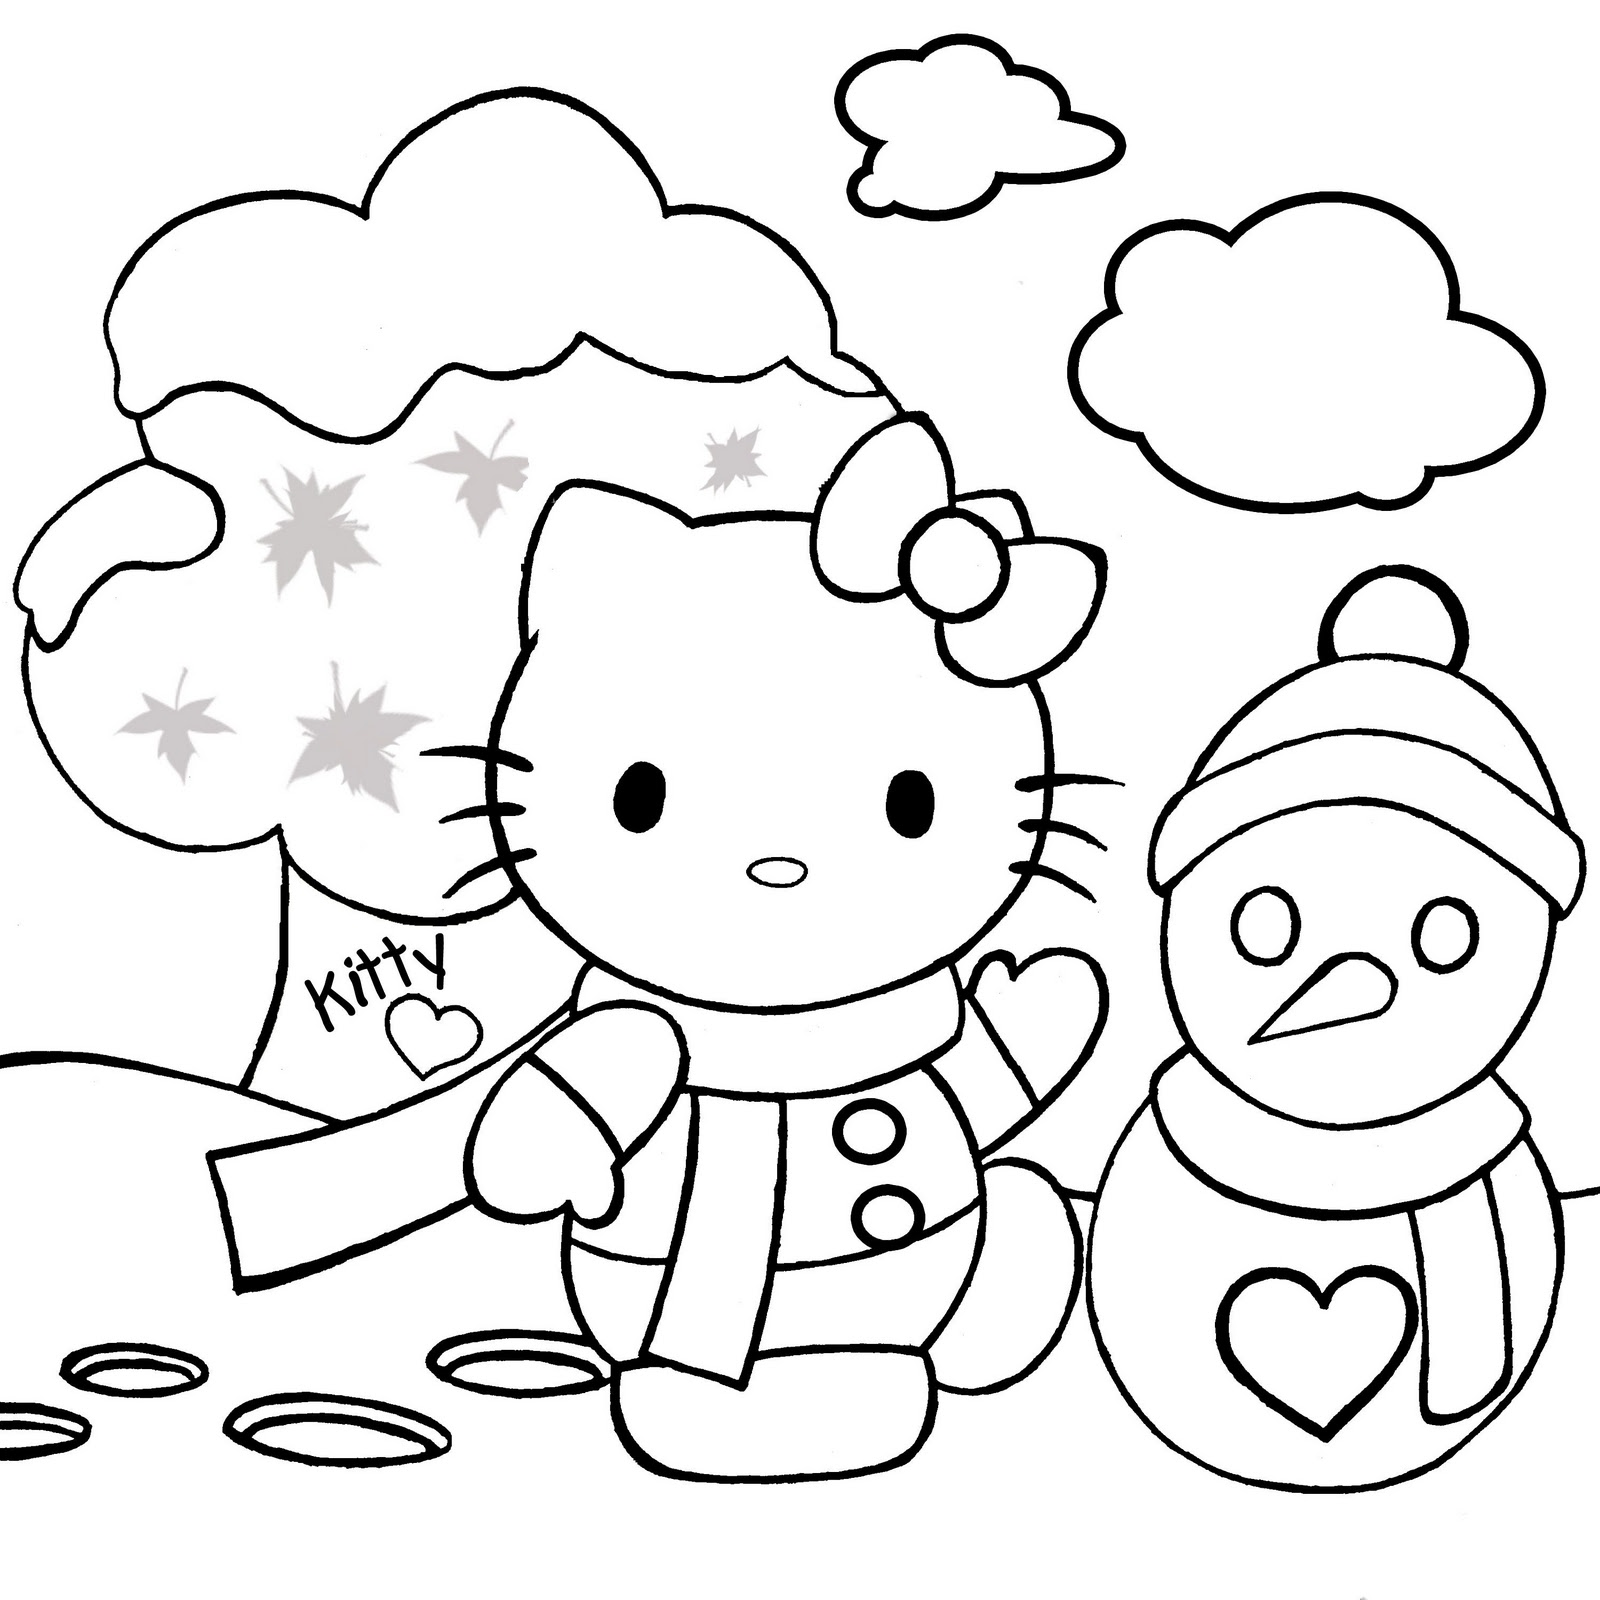 christmas coloring pages hello kitty free coloring pages printable pictures to color kids coloring christmas hello pages kitty